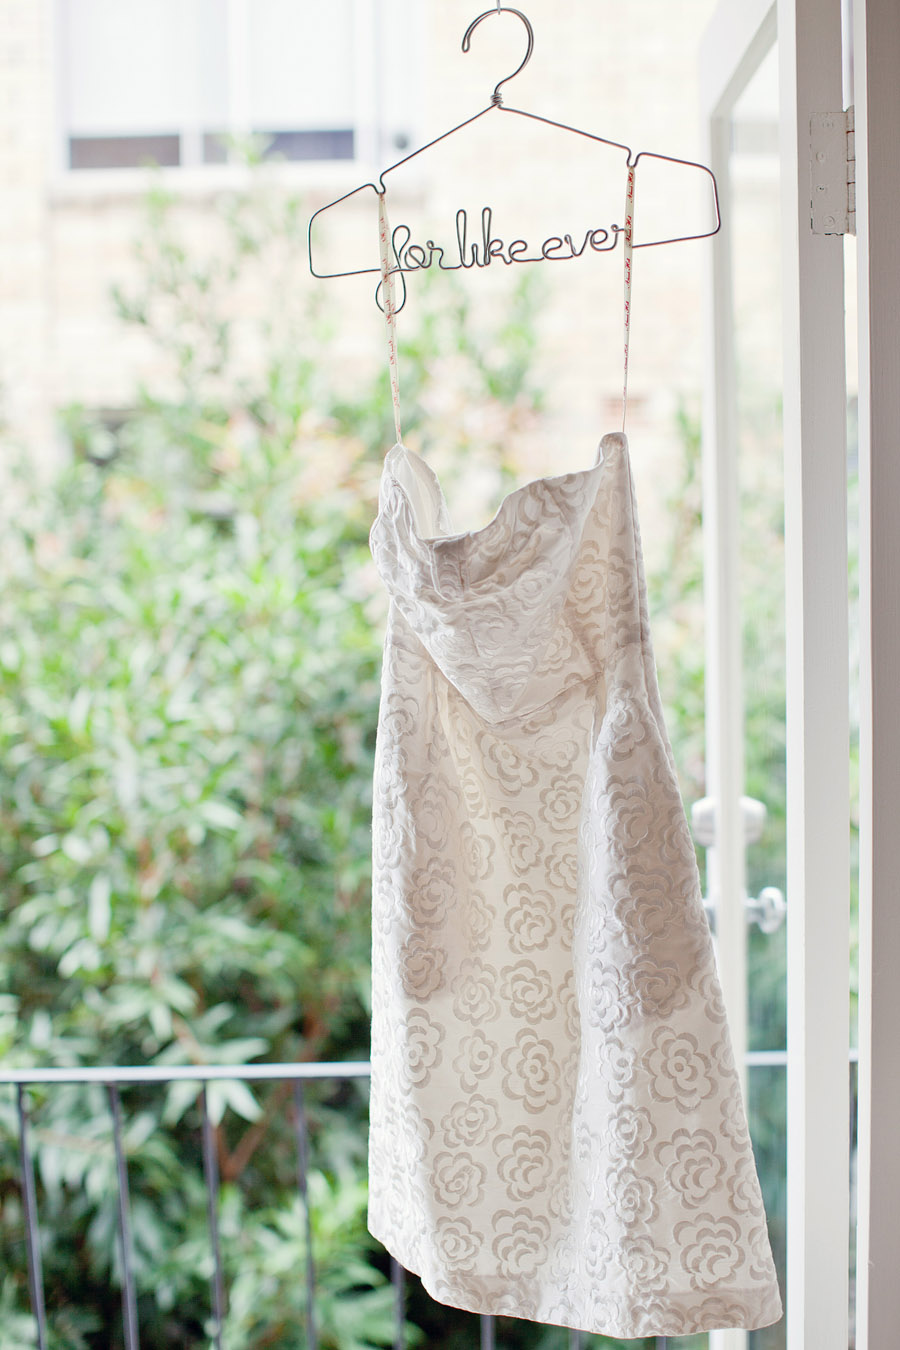 Sydney Wedding Photographer: Bride's dress hanging in door